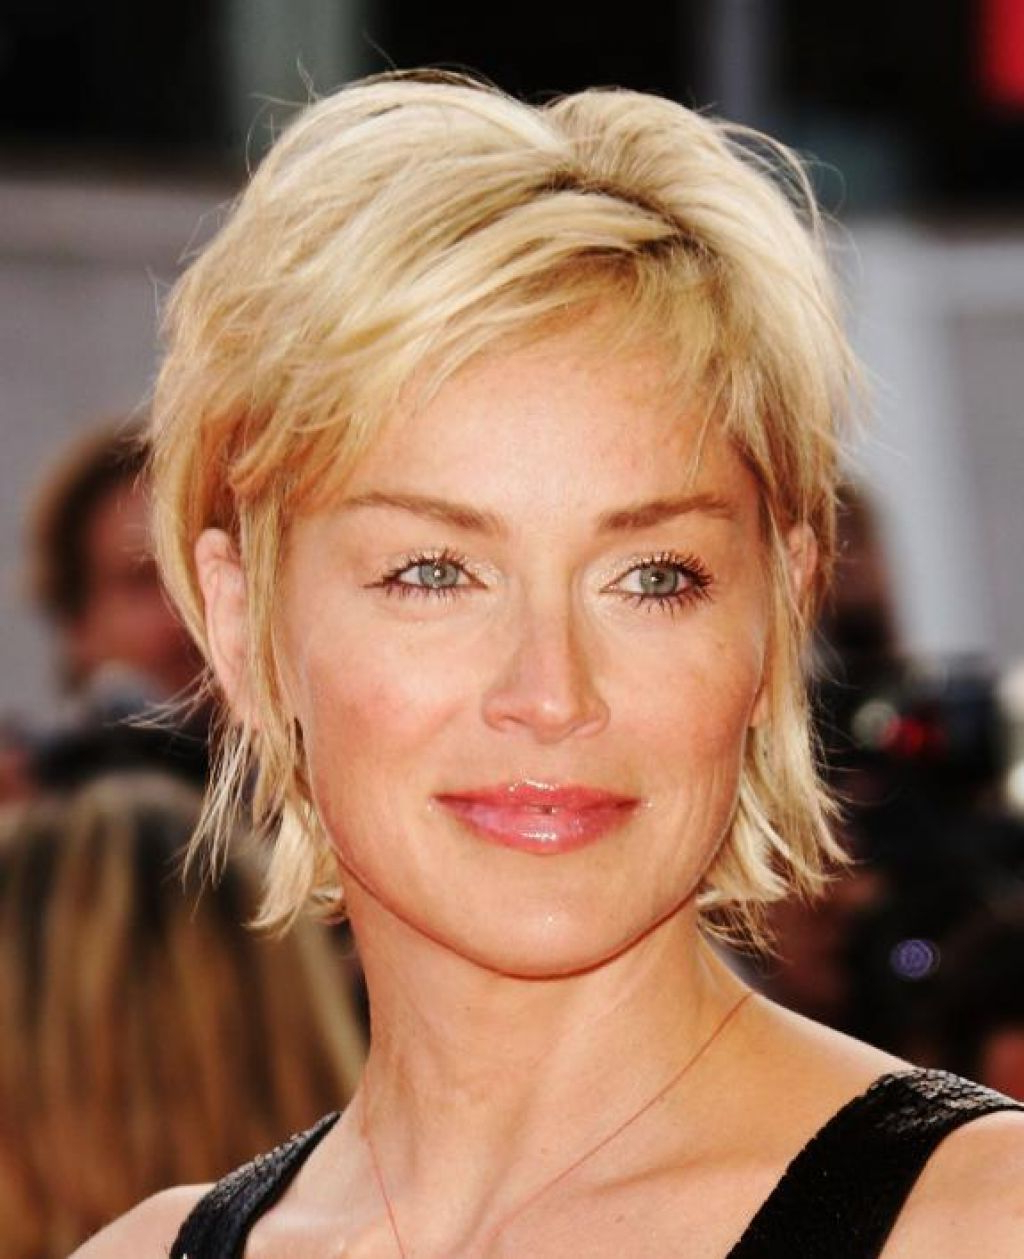 Image Result For Medium Length Hairstyles For 50 Year Old Women Throughout Short Hairstyles For 50 Year Old Woman (View 17 of 25)